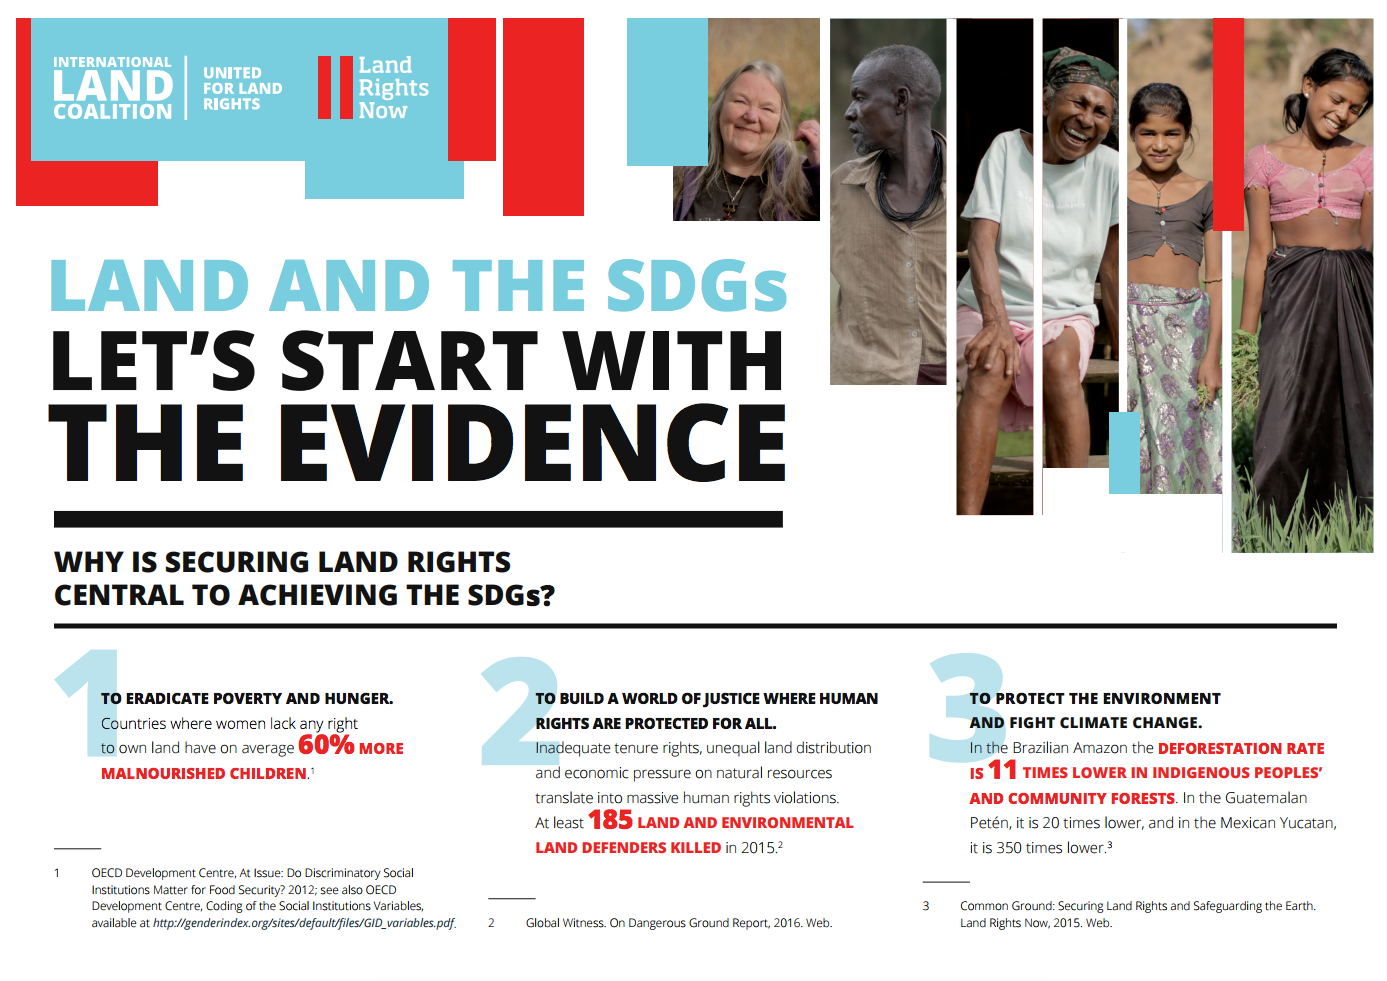 Land and the SDGs: Let's Start with Evidence cover image